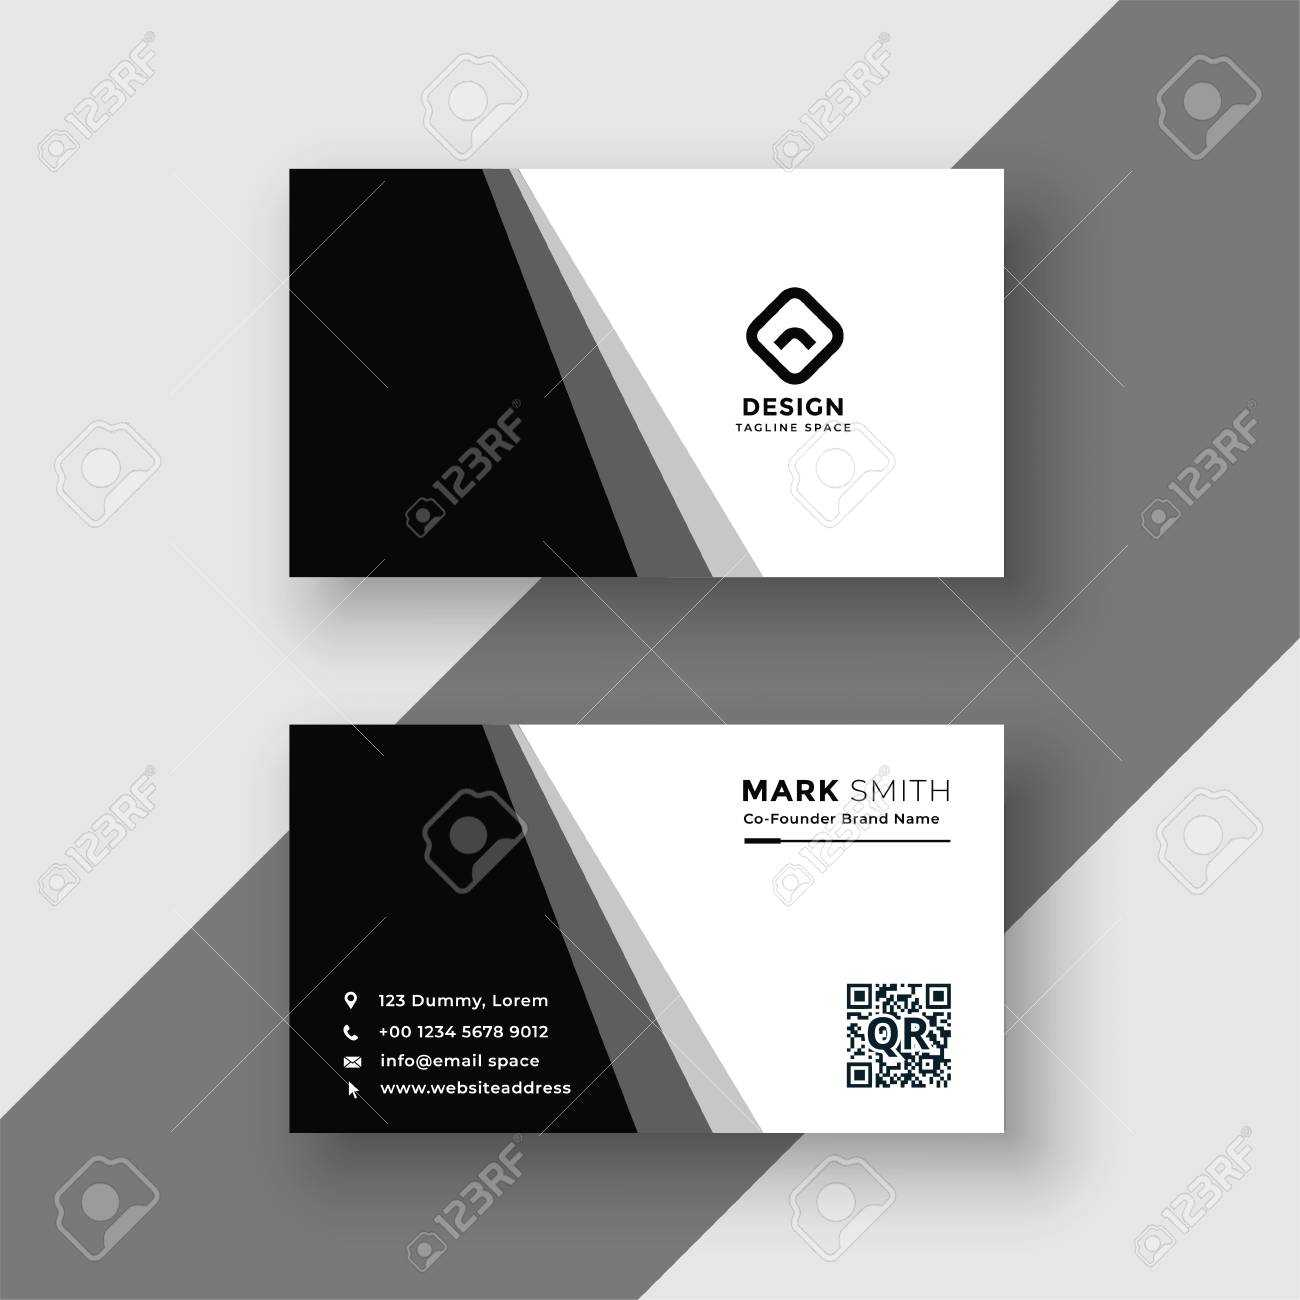 Elegant Black And White Business Card Template Intended For Black And White Business Cards Templates Free